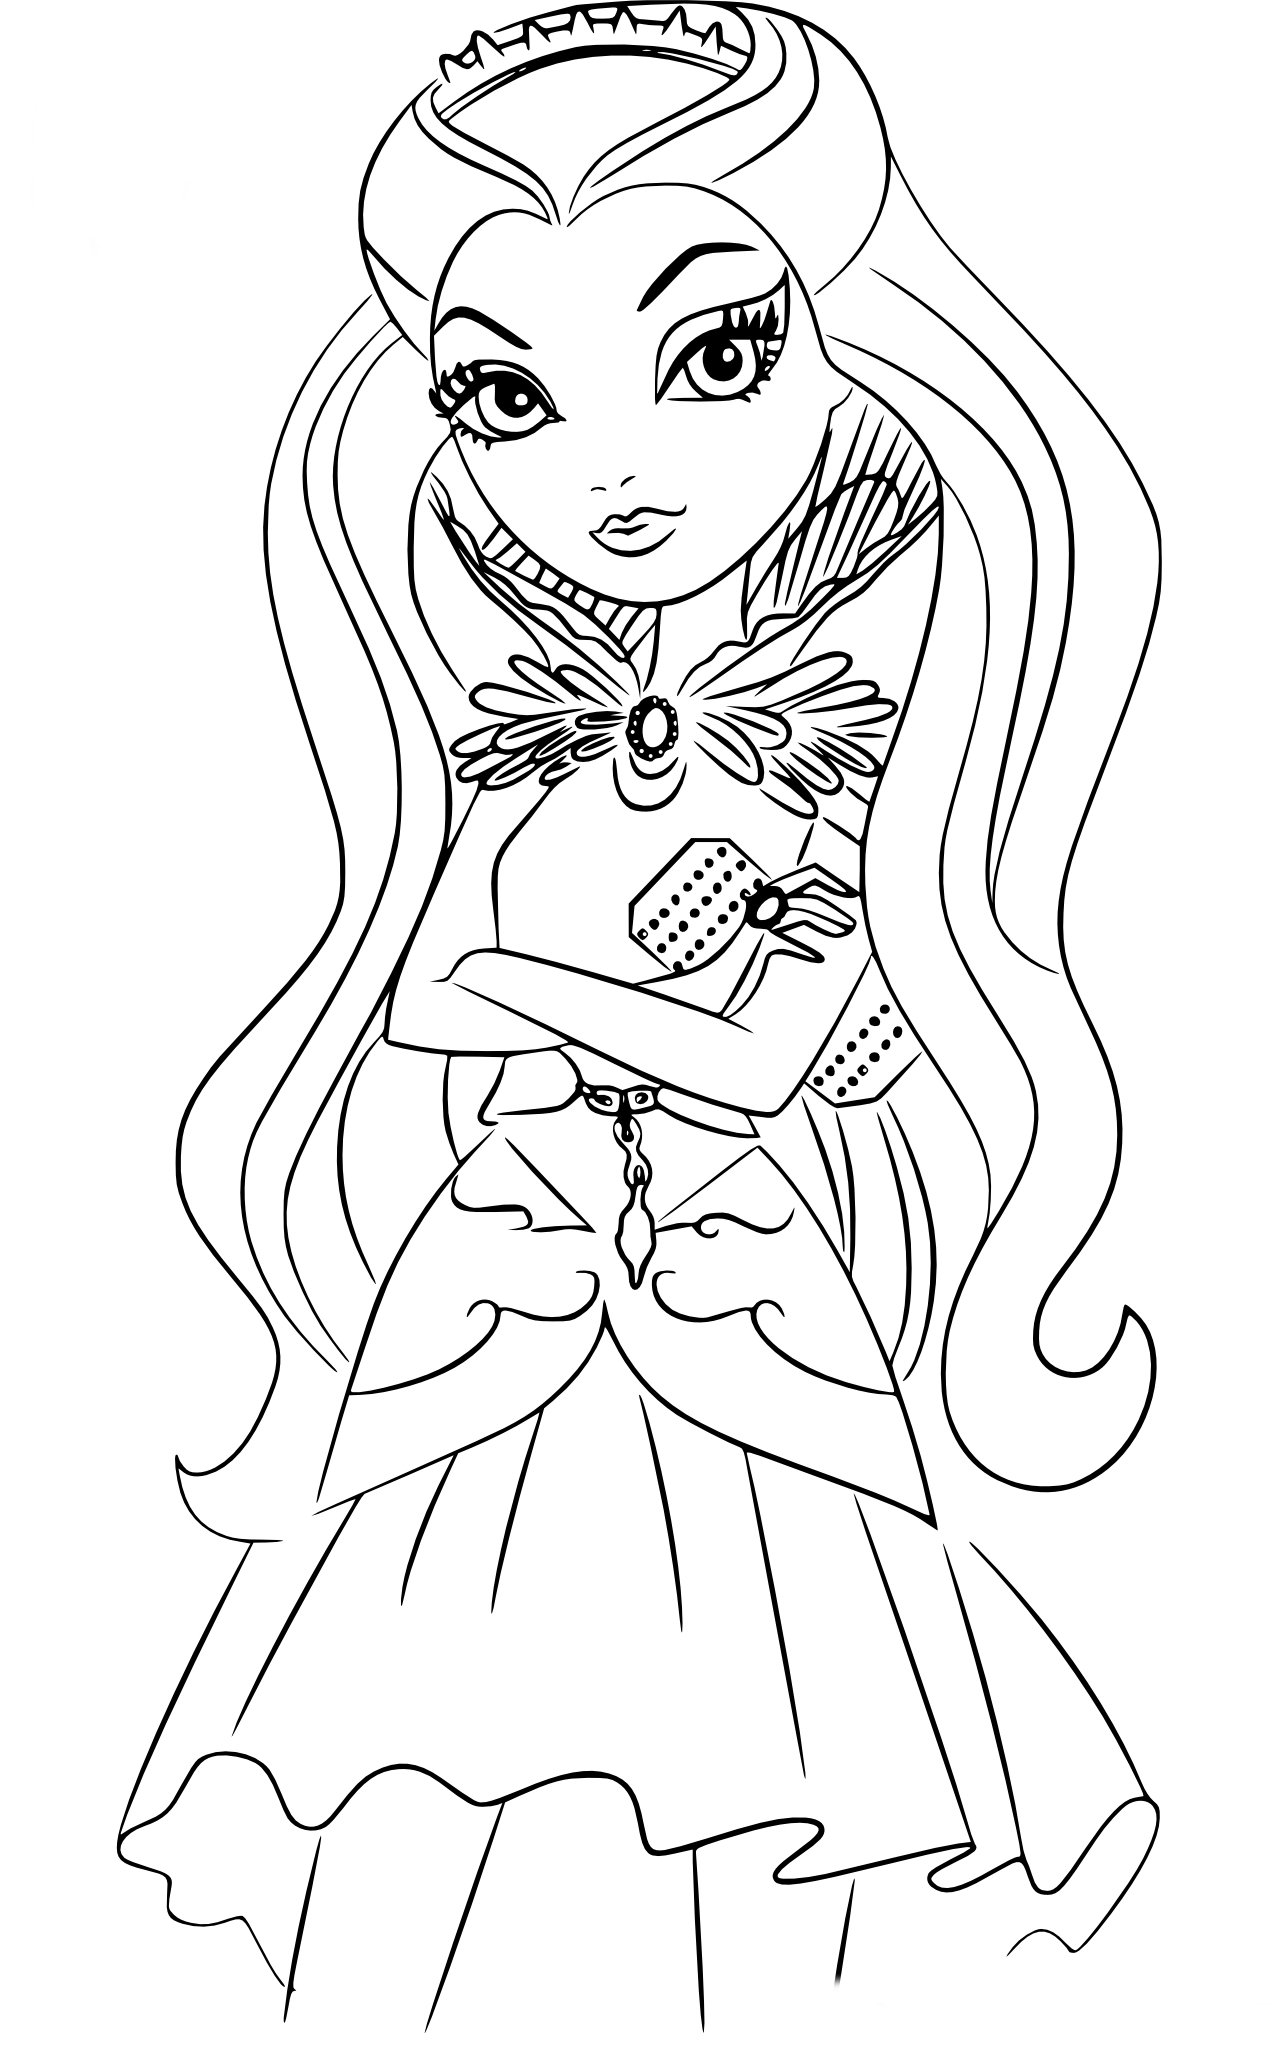 raven coloring pages - raven coloring pages sketch templates